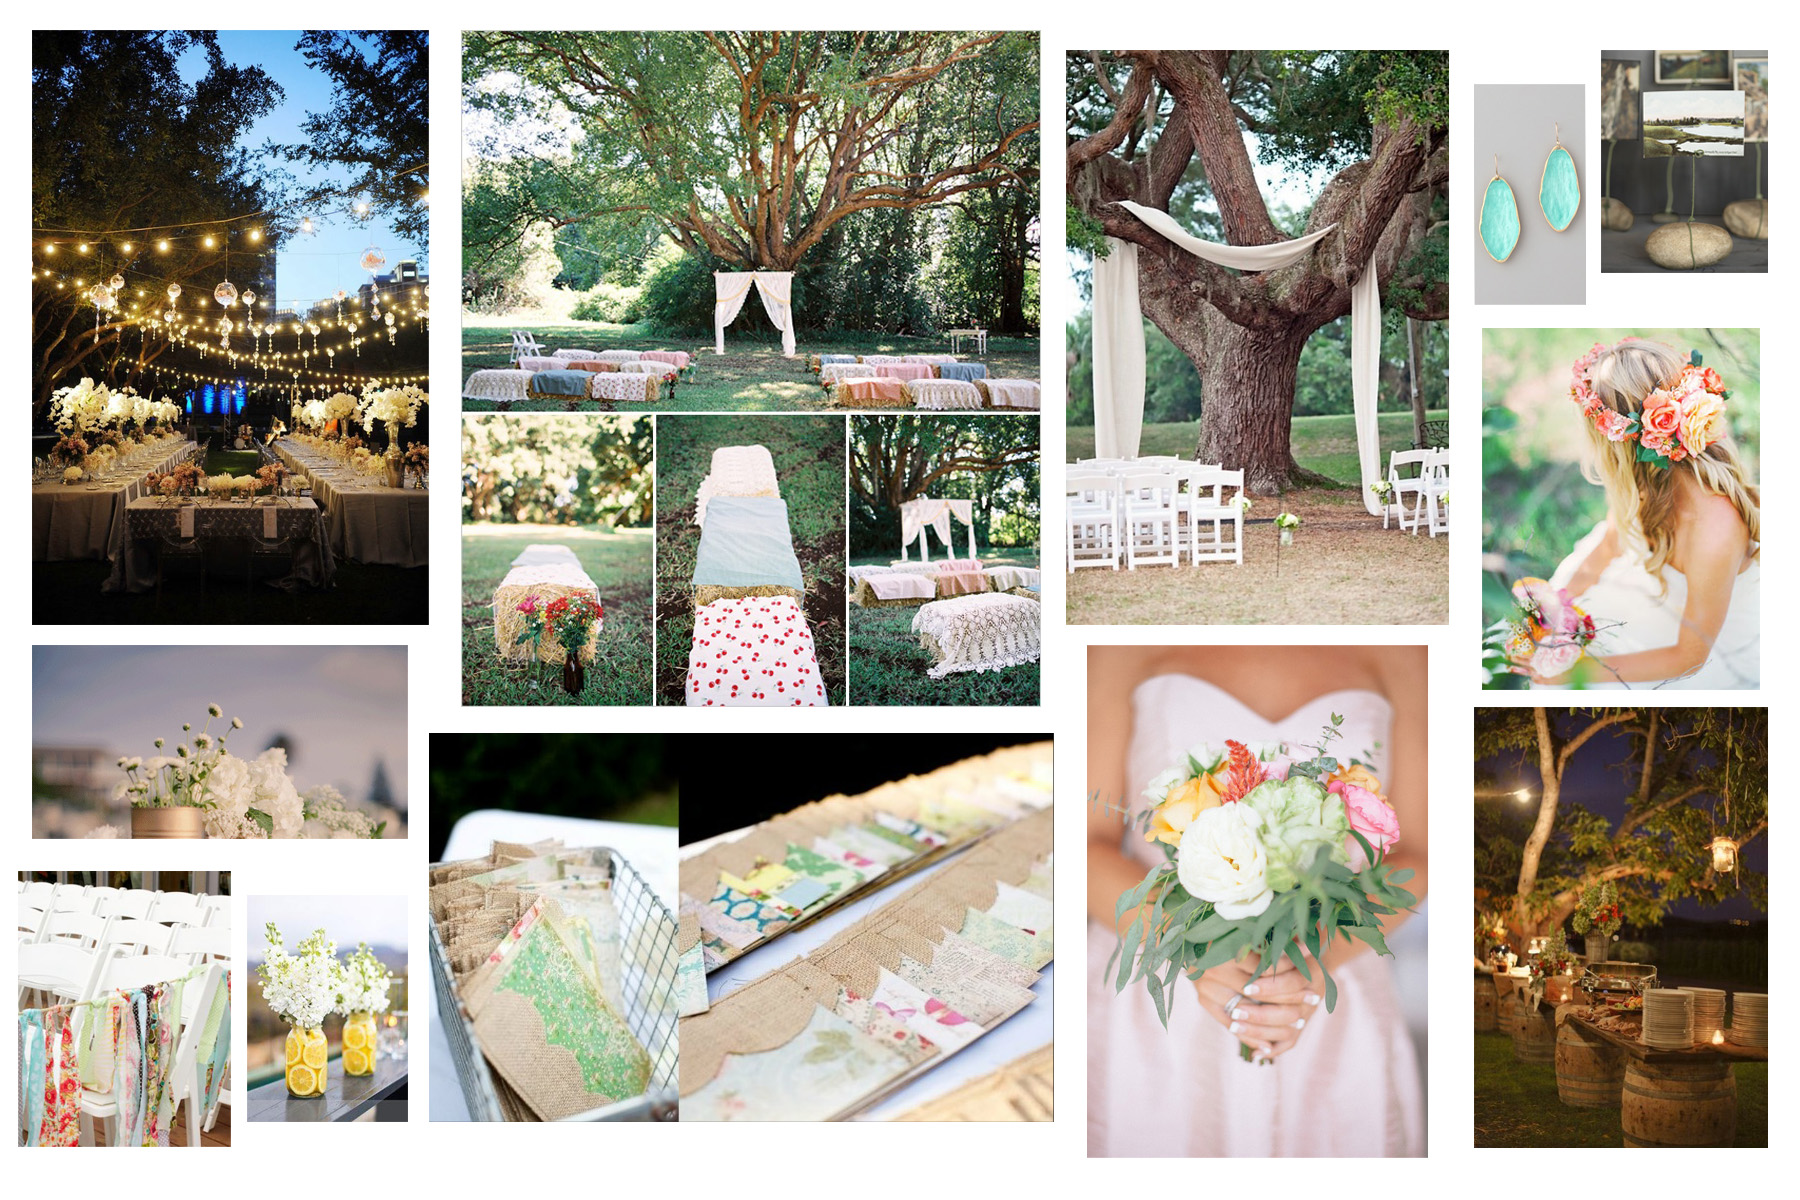 Wedding Blog Have you met the Mavens yet?